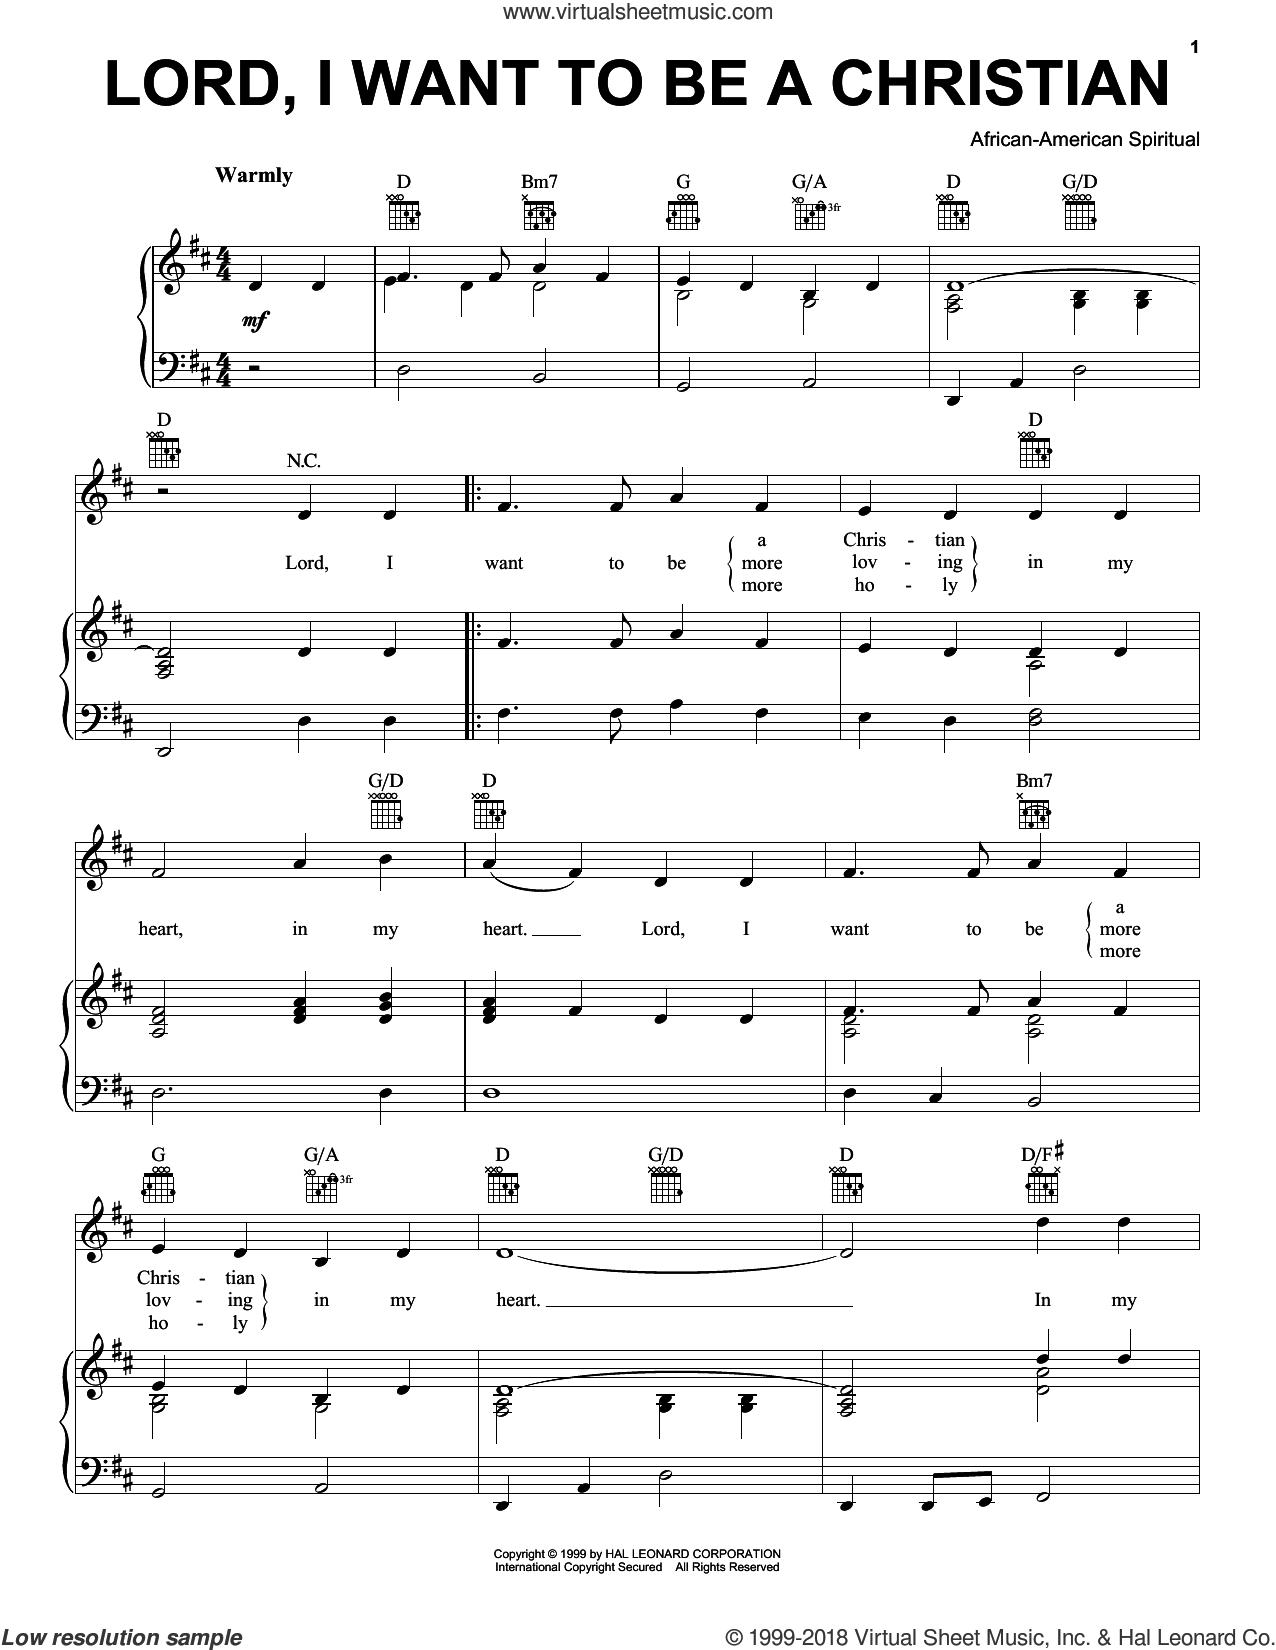 Lord, I Want To Be A Christian sheet music for voice, piano or guitar